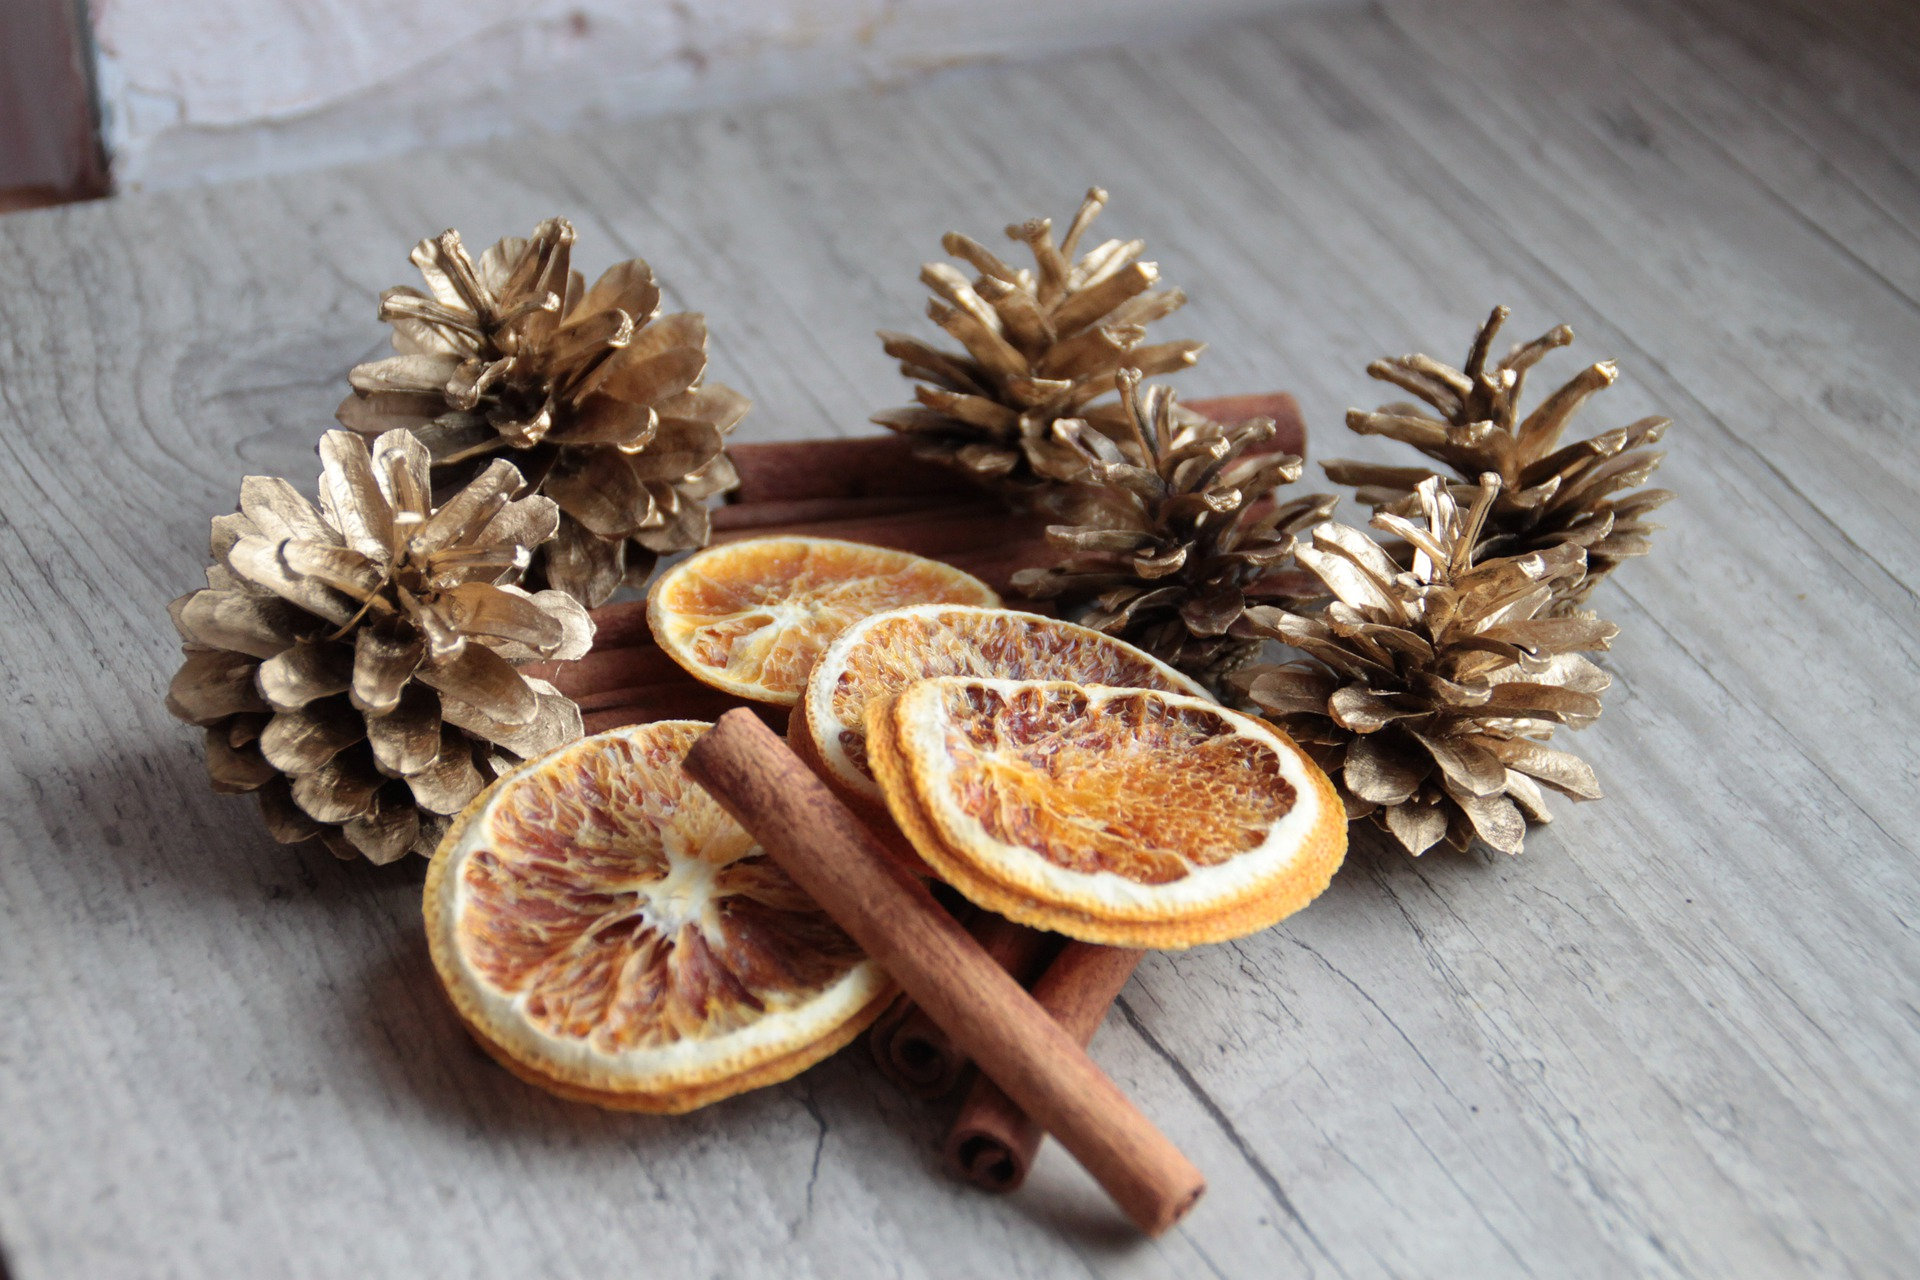 Create Christmas decorations using natural materials